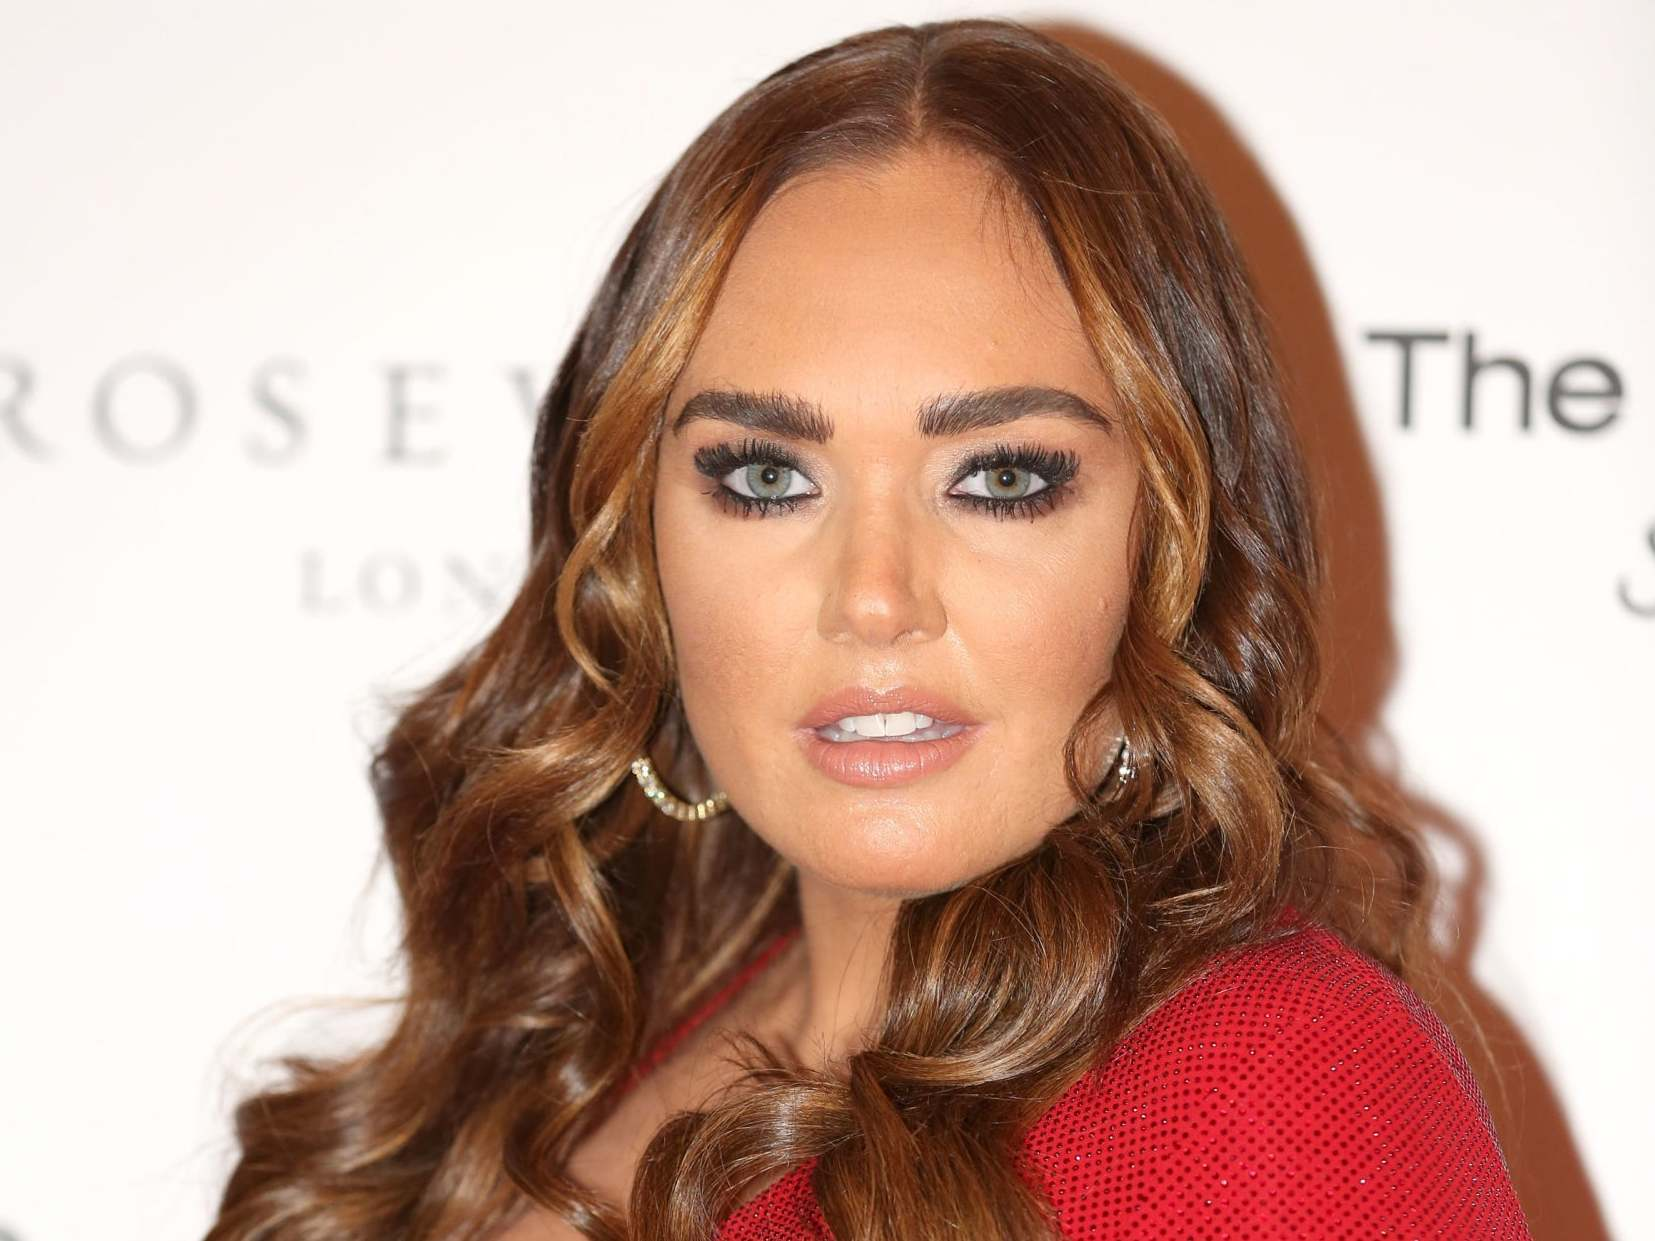 Tamara Ecclestone: Two charged in £50m jewellery heist from heiress's London home